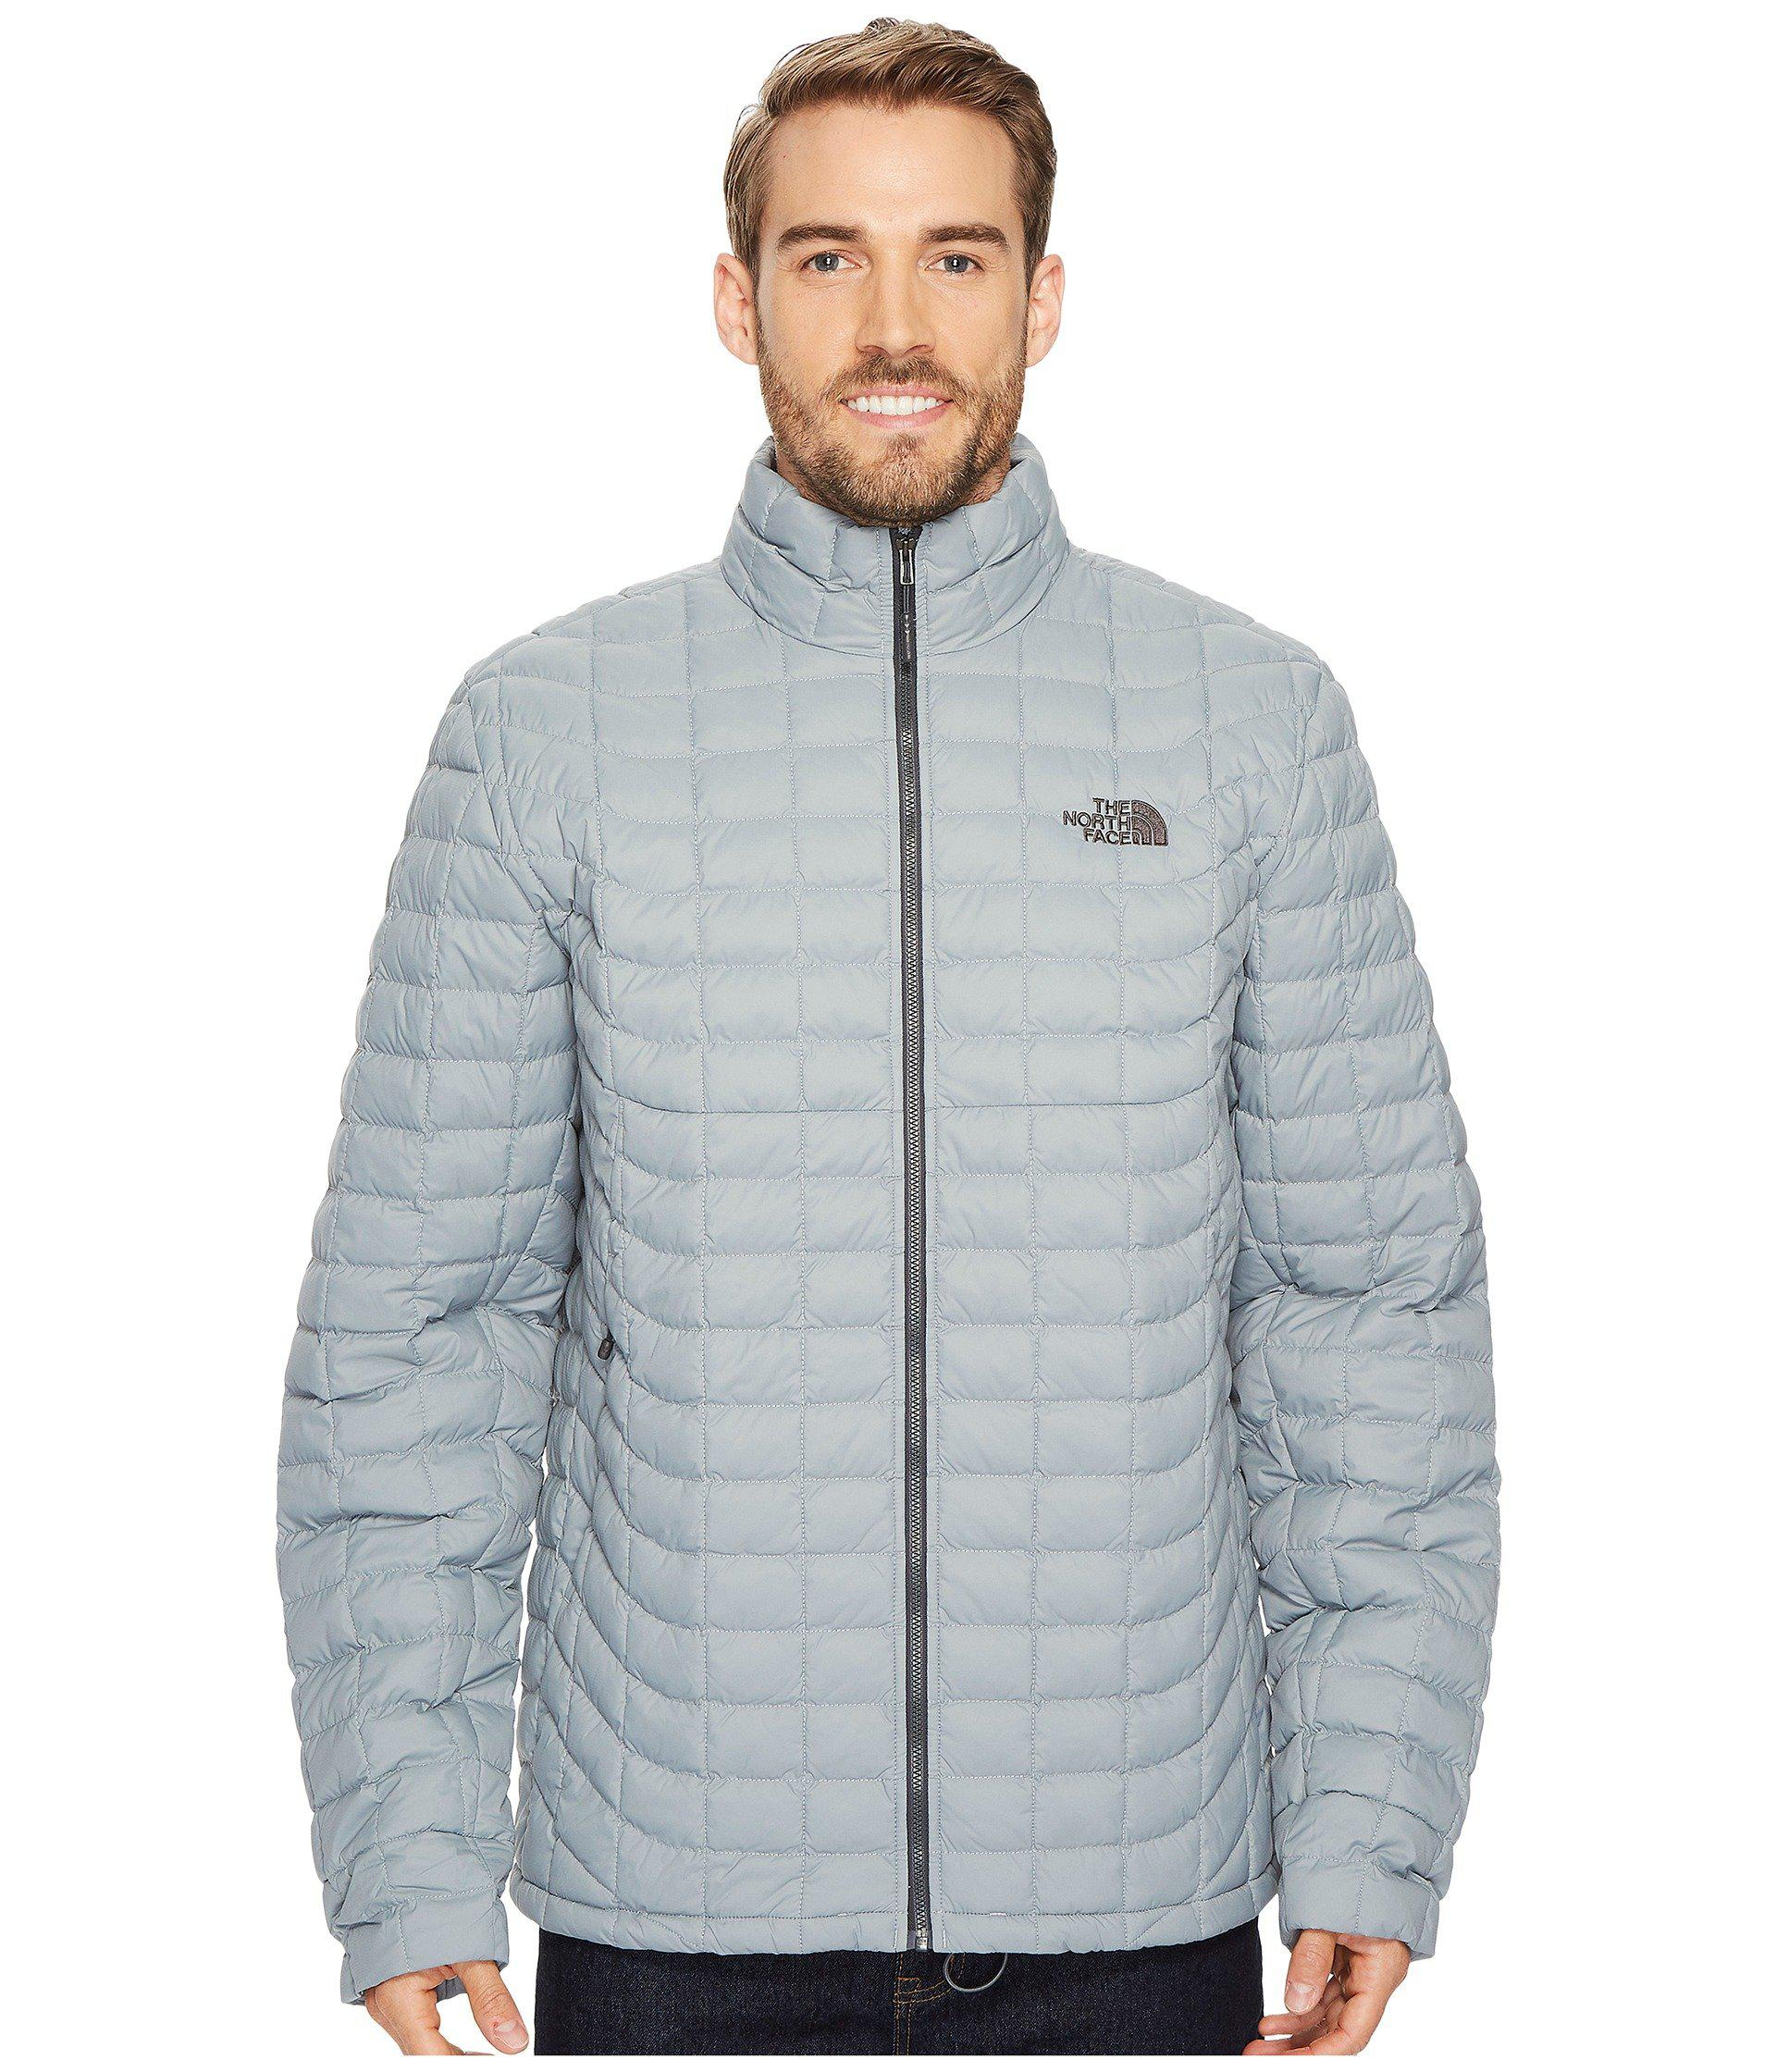 0734ed9310 Lyst - The North Face Thermoball Jacket - Tall in Gray for Men ...